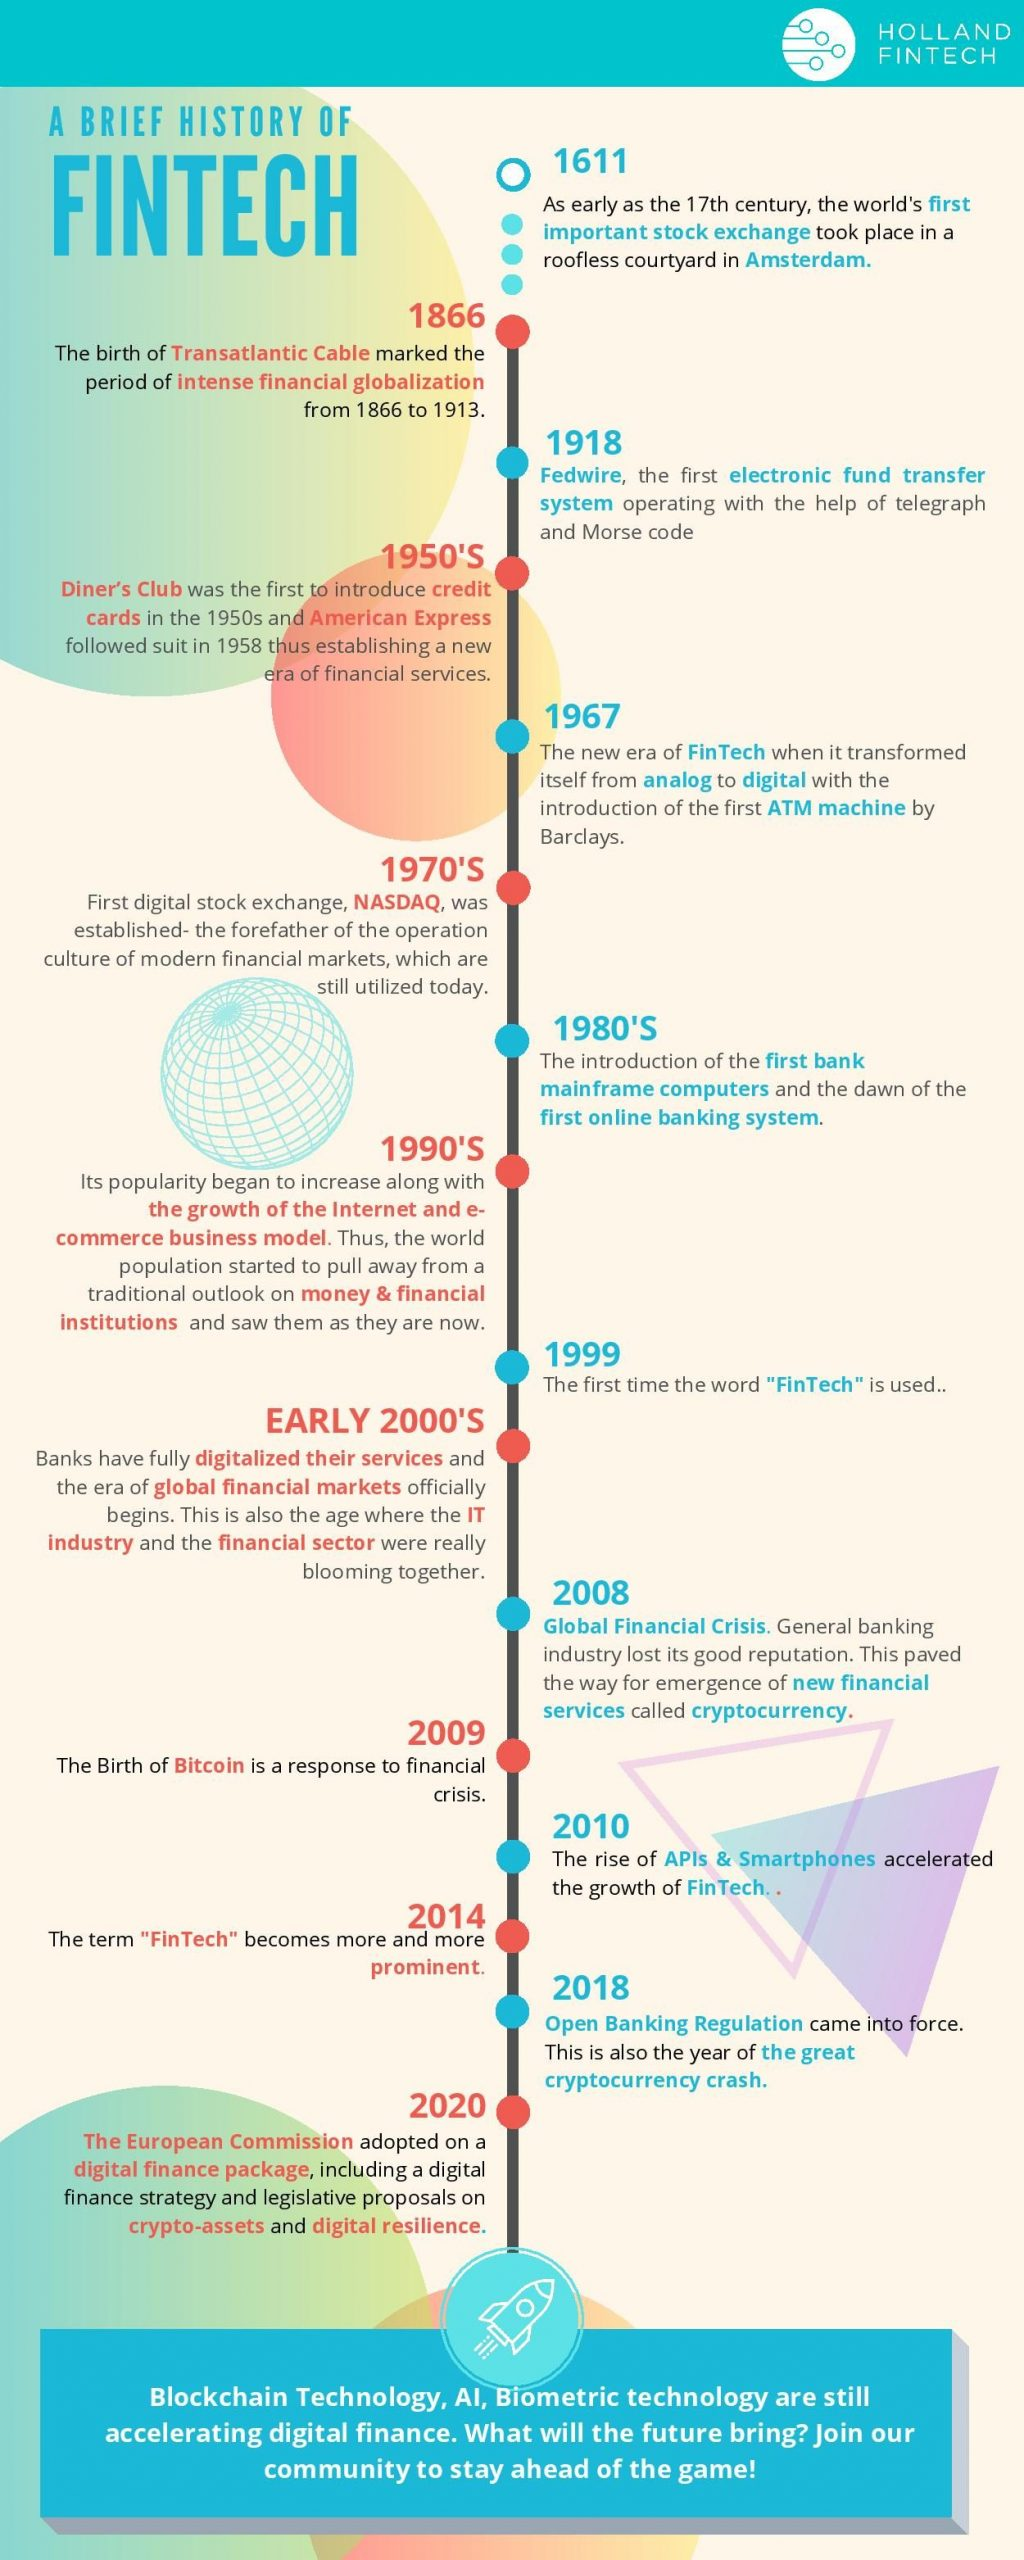 A Brief History of Fintech - Infographic